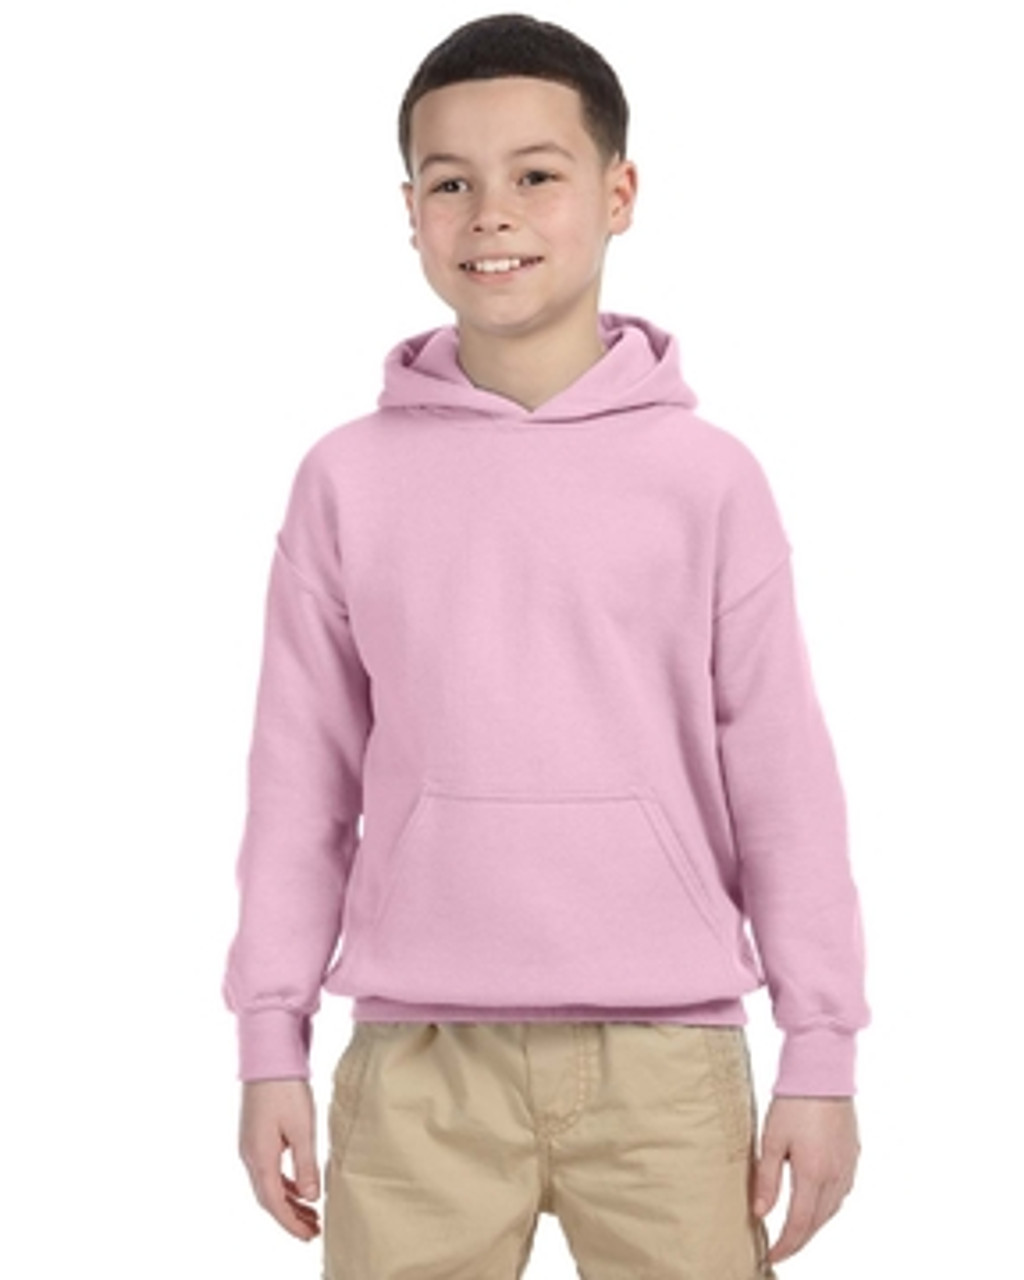 Light Pink - G185B Gildan Heavy Blend Youth 50/50 Hoodie | Blankclothing.ca